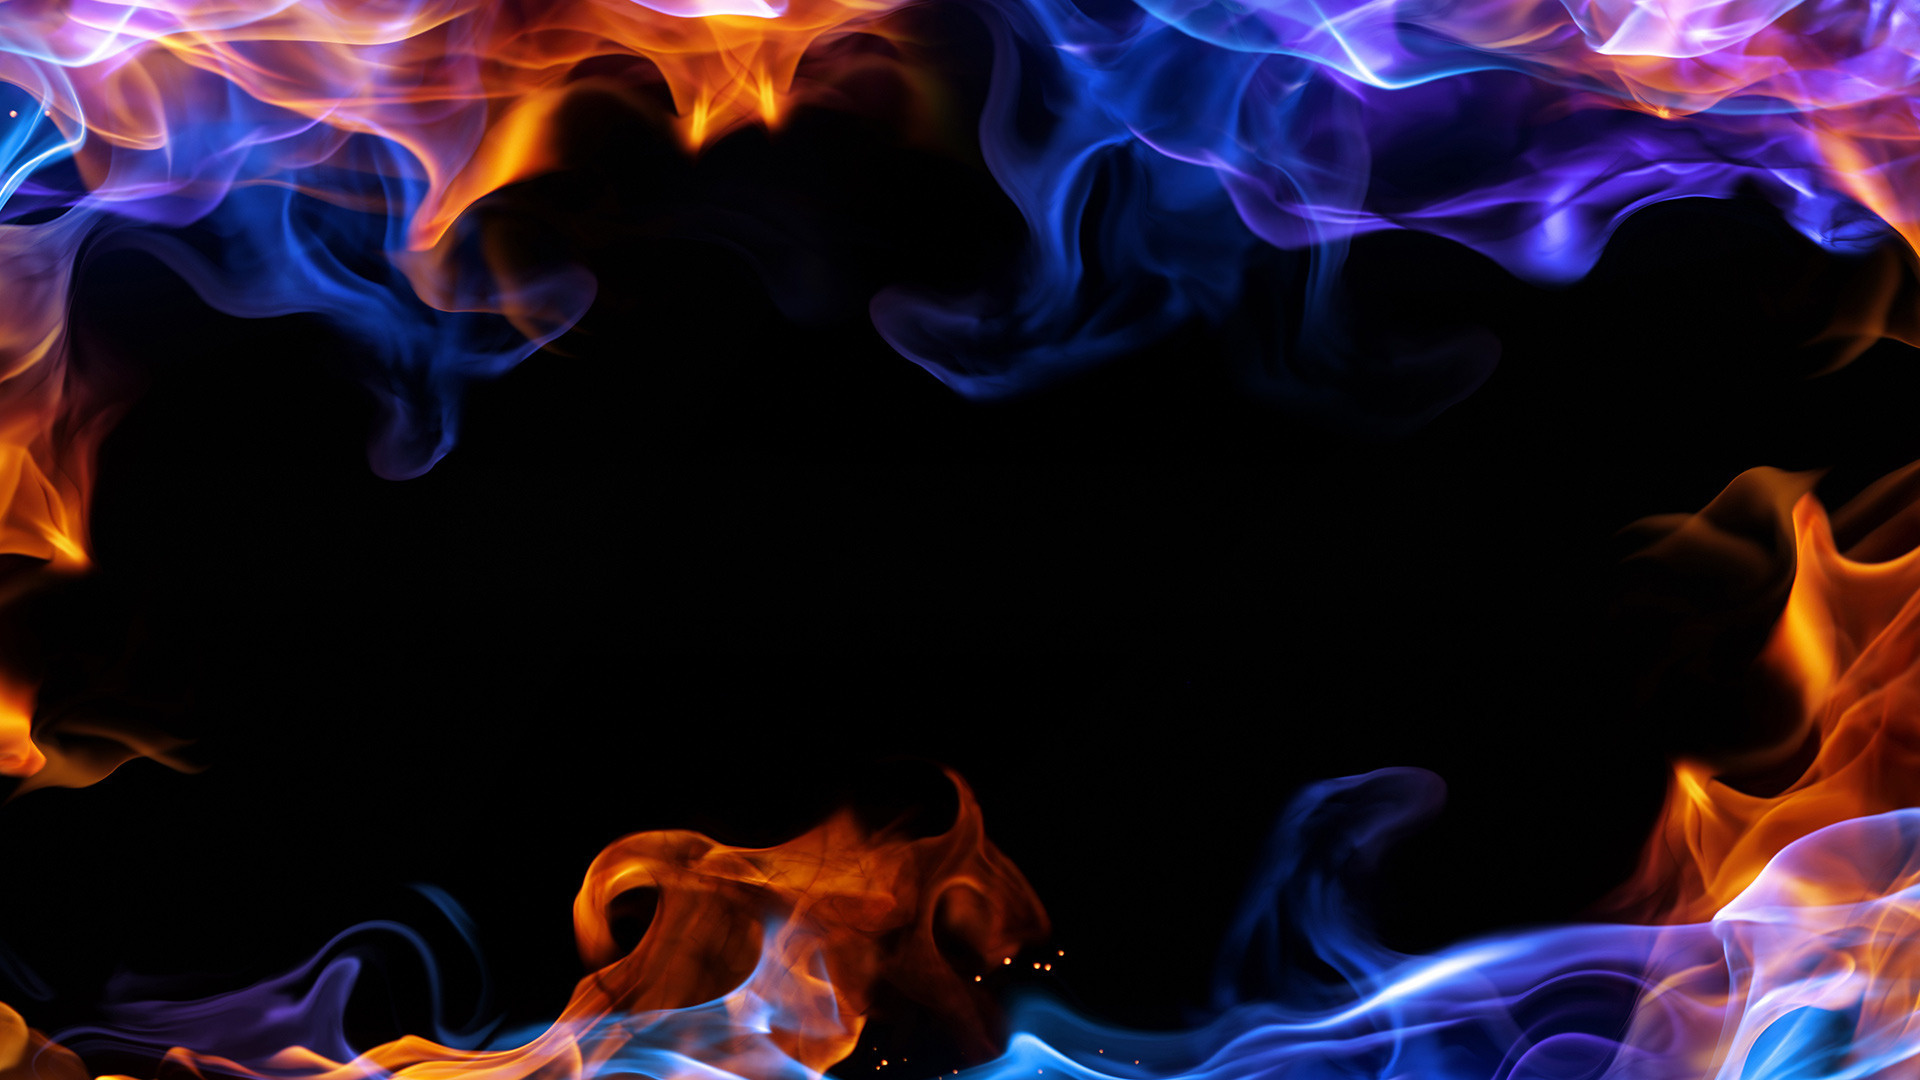 goodwpcom3d16903 smoke fire graphicshtml 1920x1080